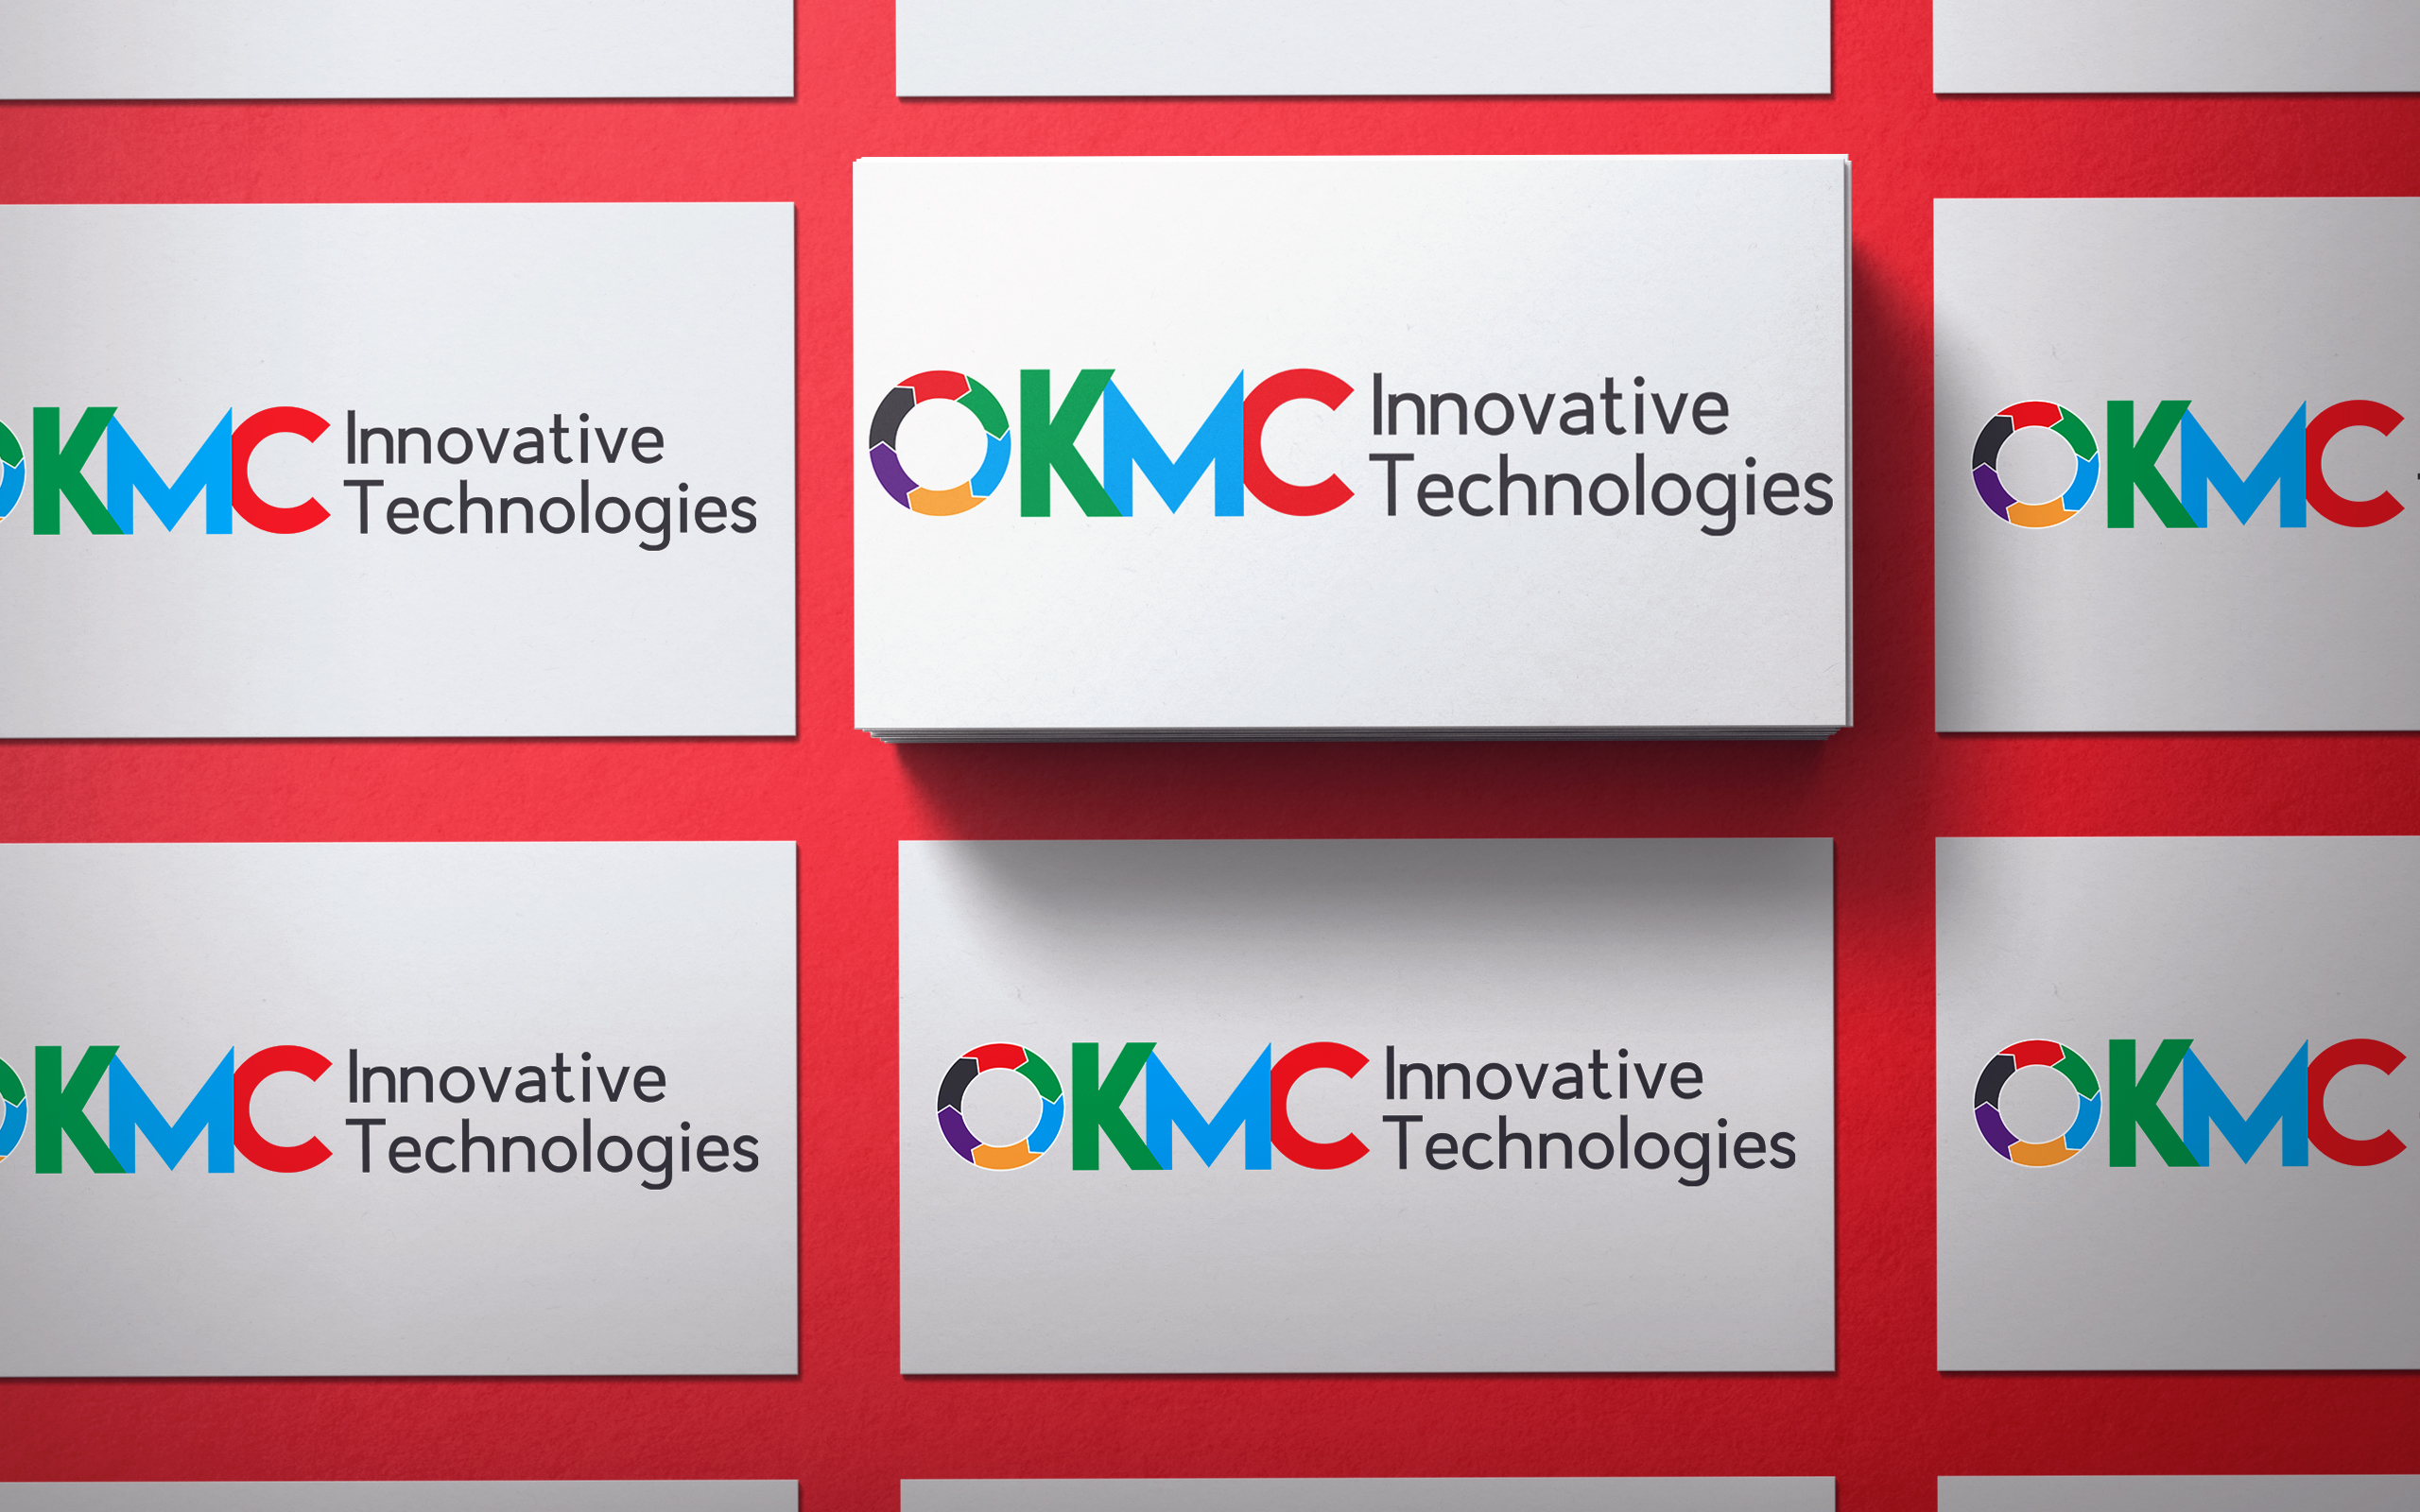 KMC Innovative Technologies